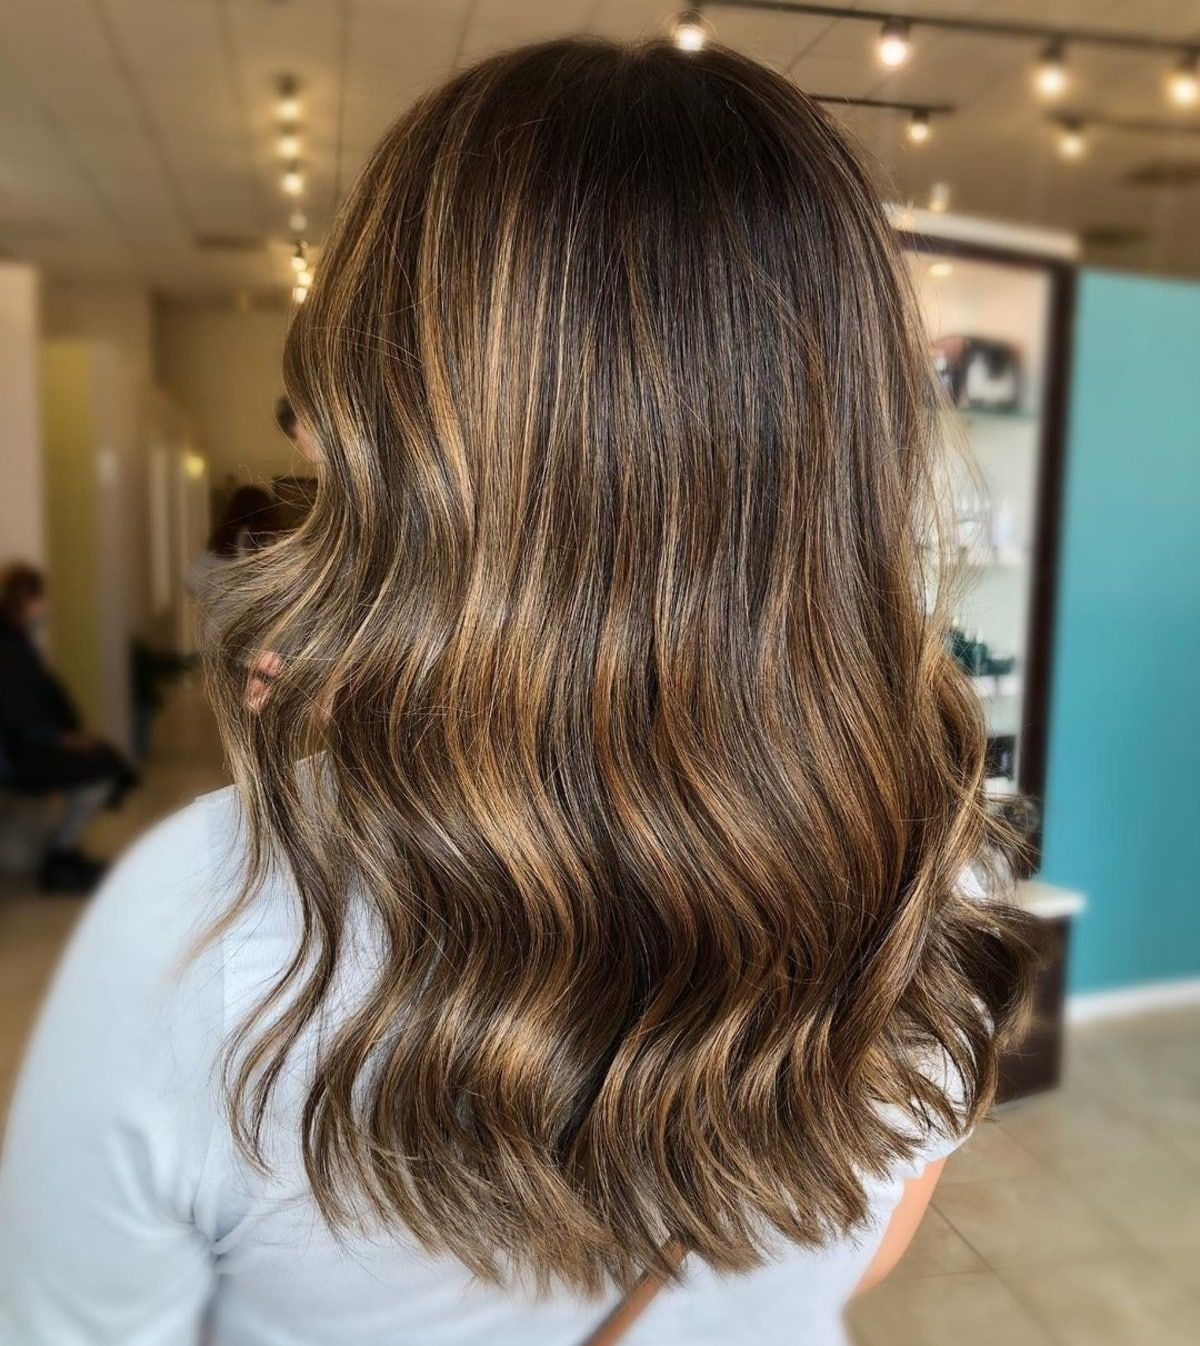 18 Light Brown Hair with Highlights Ideas For Brunettes Gallery